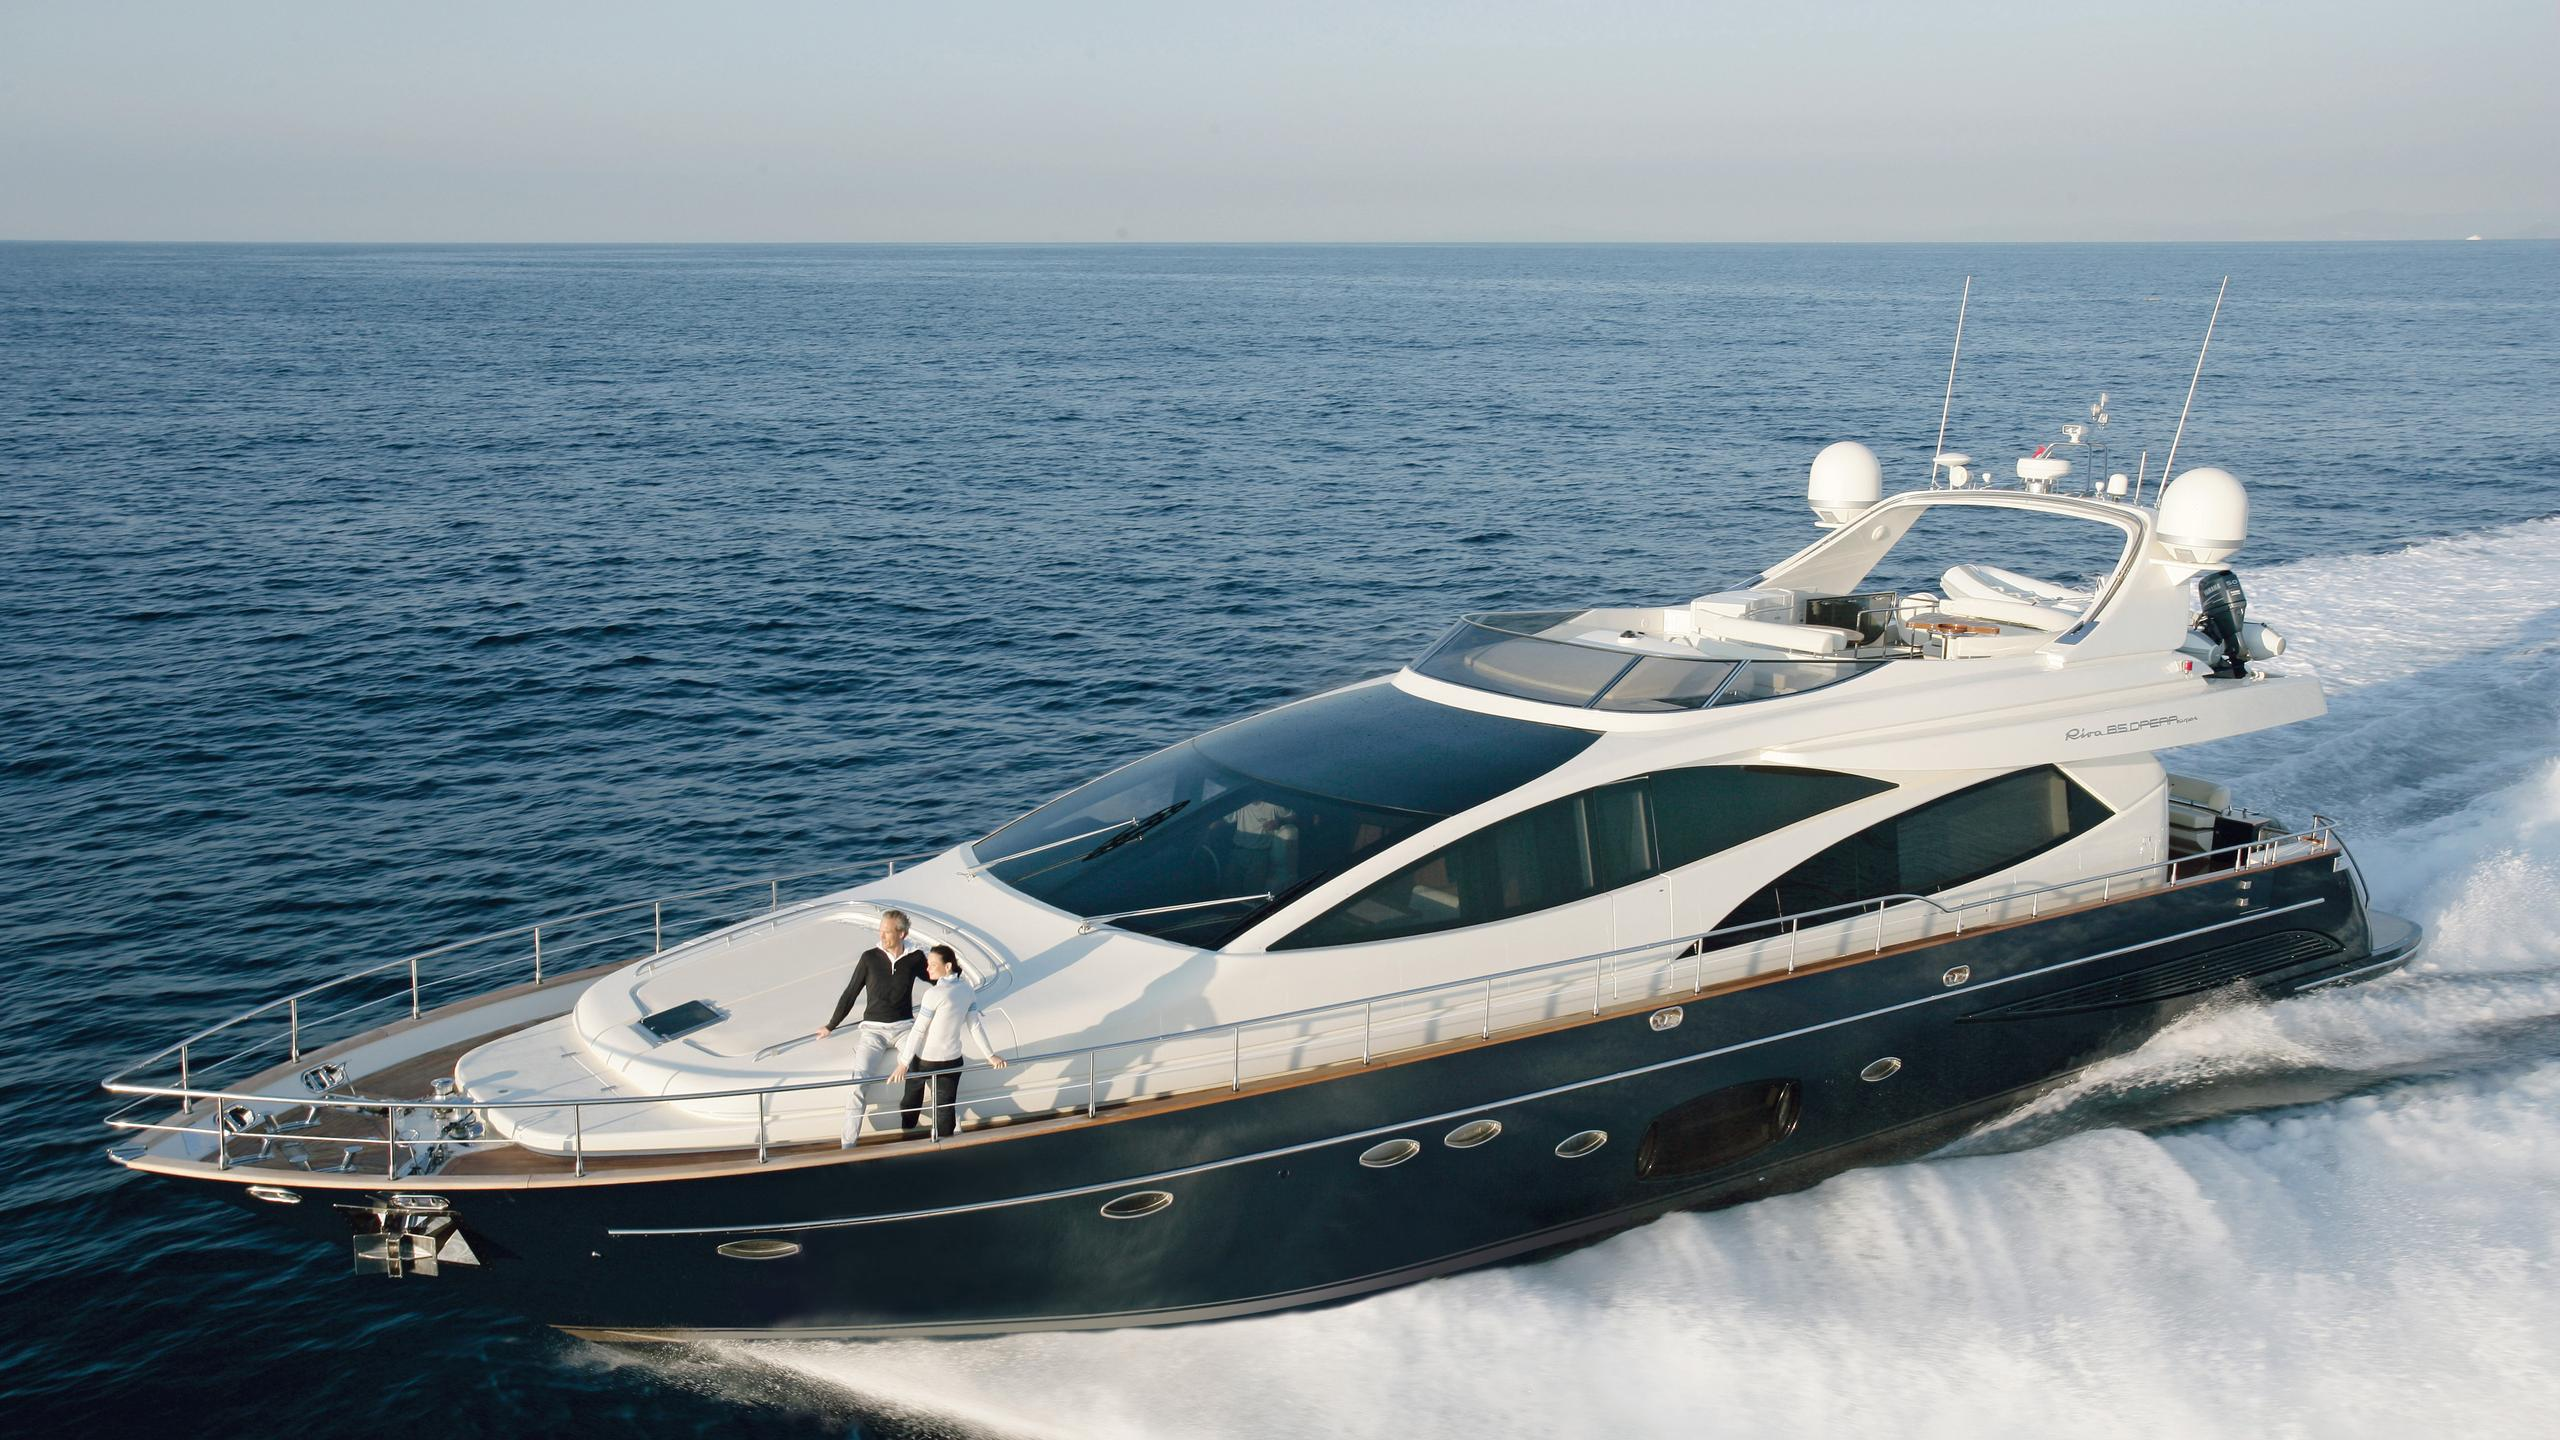 wedge-three-yacht-for-sale-profile